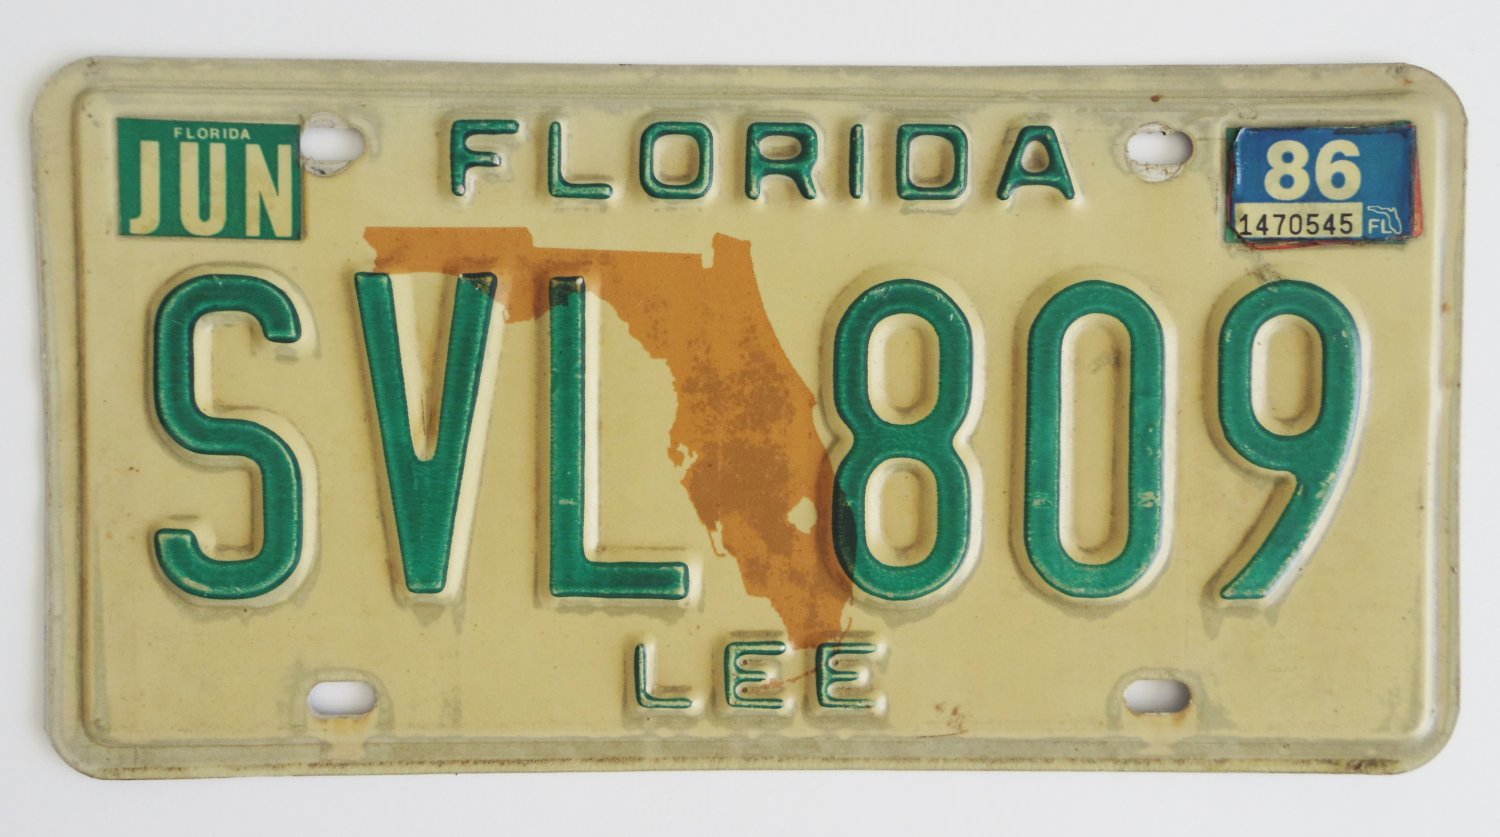 86 lee county florida license plate for Florida fishing license phone number